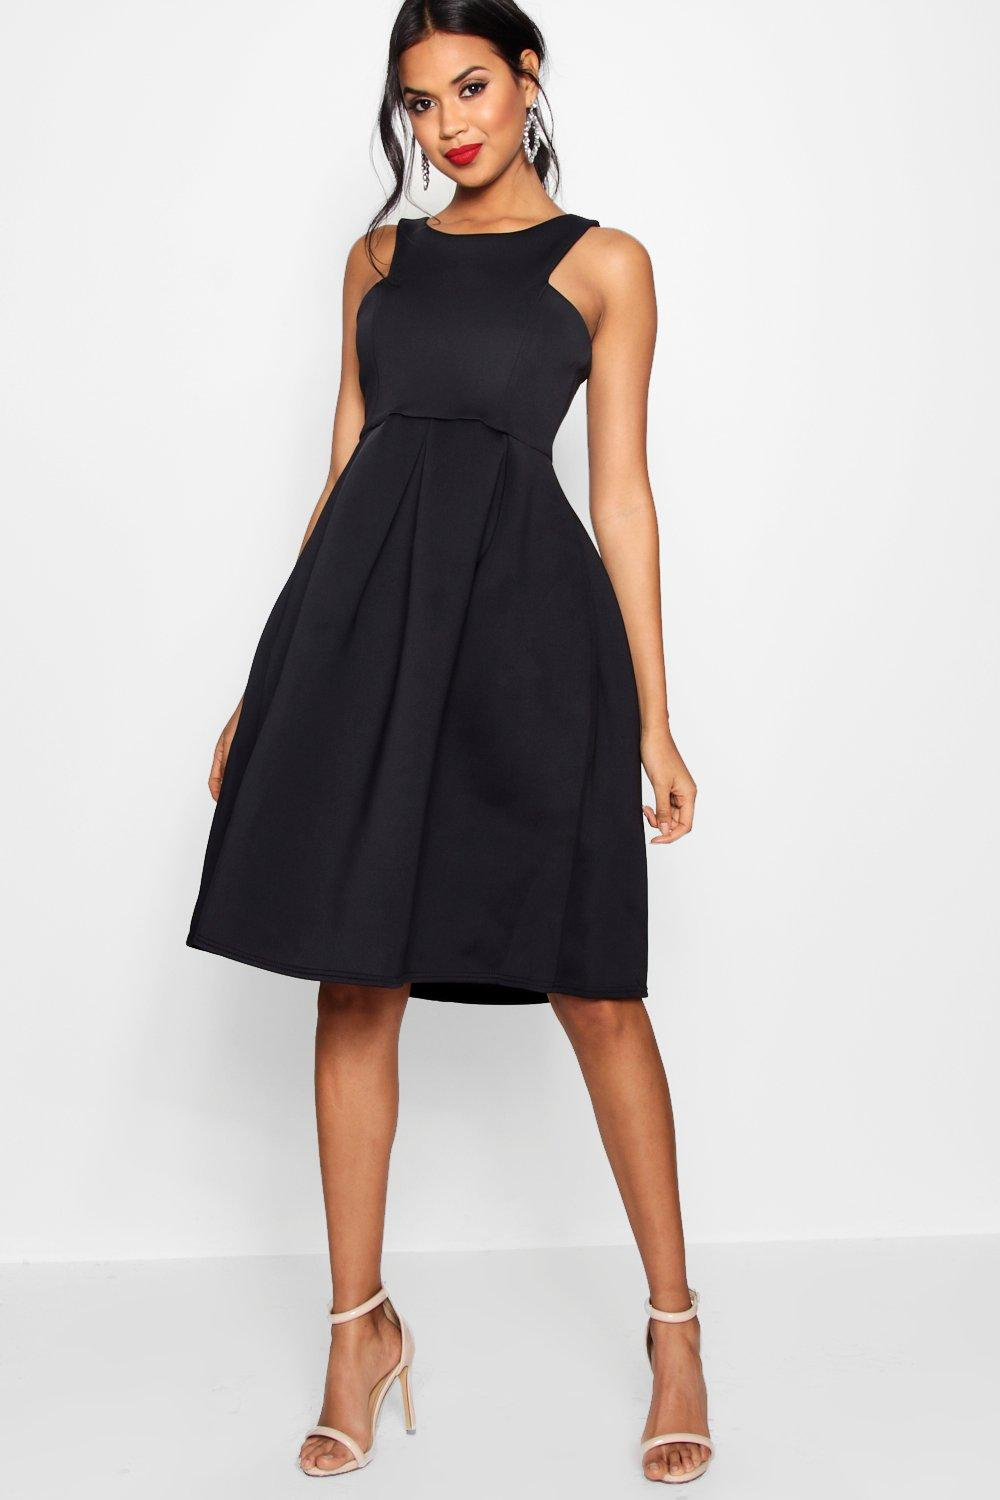 May scuba cutaway neckline midi dress at for Boohoo dresses for weddings